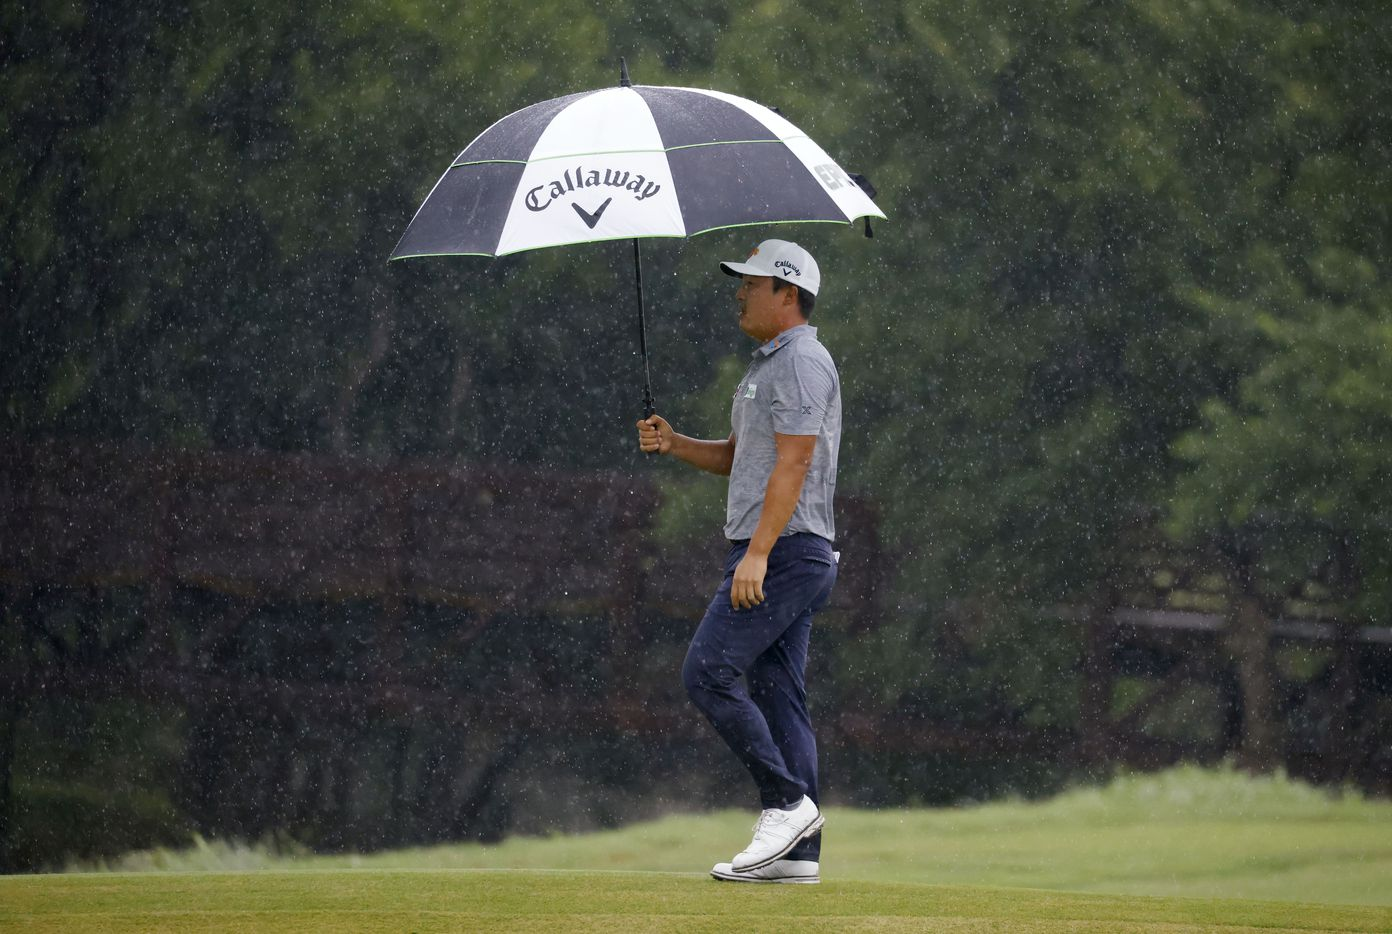 Kyoung-Hoon Lee walks the green on the 9th hole as it rains during round 4 of the AT&T Byron Nelson  at TPC Craig Ranch on Saturday, May 16, 2021 in McKinney, Texas. (Vernon Bryant/The Dallas Morning News)